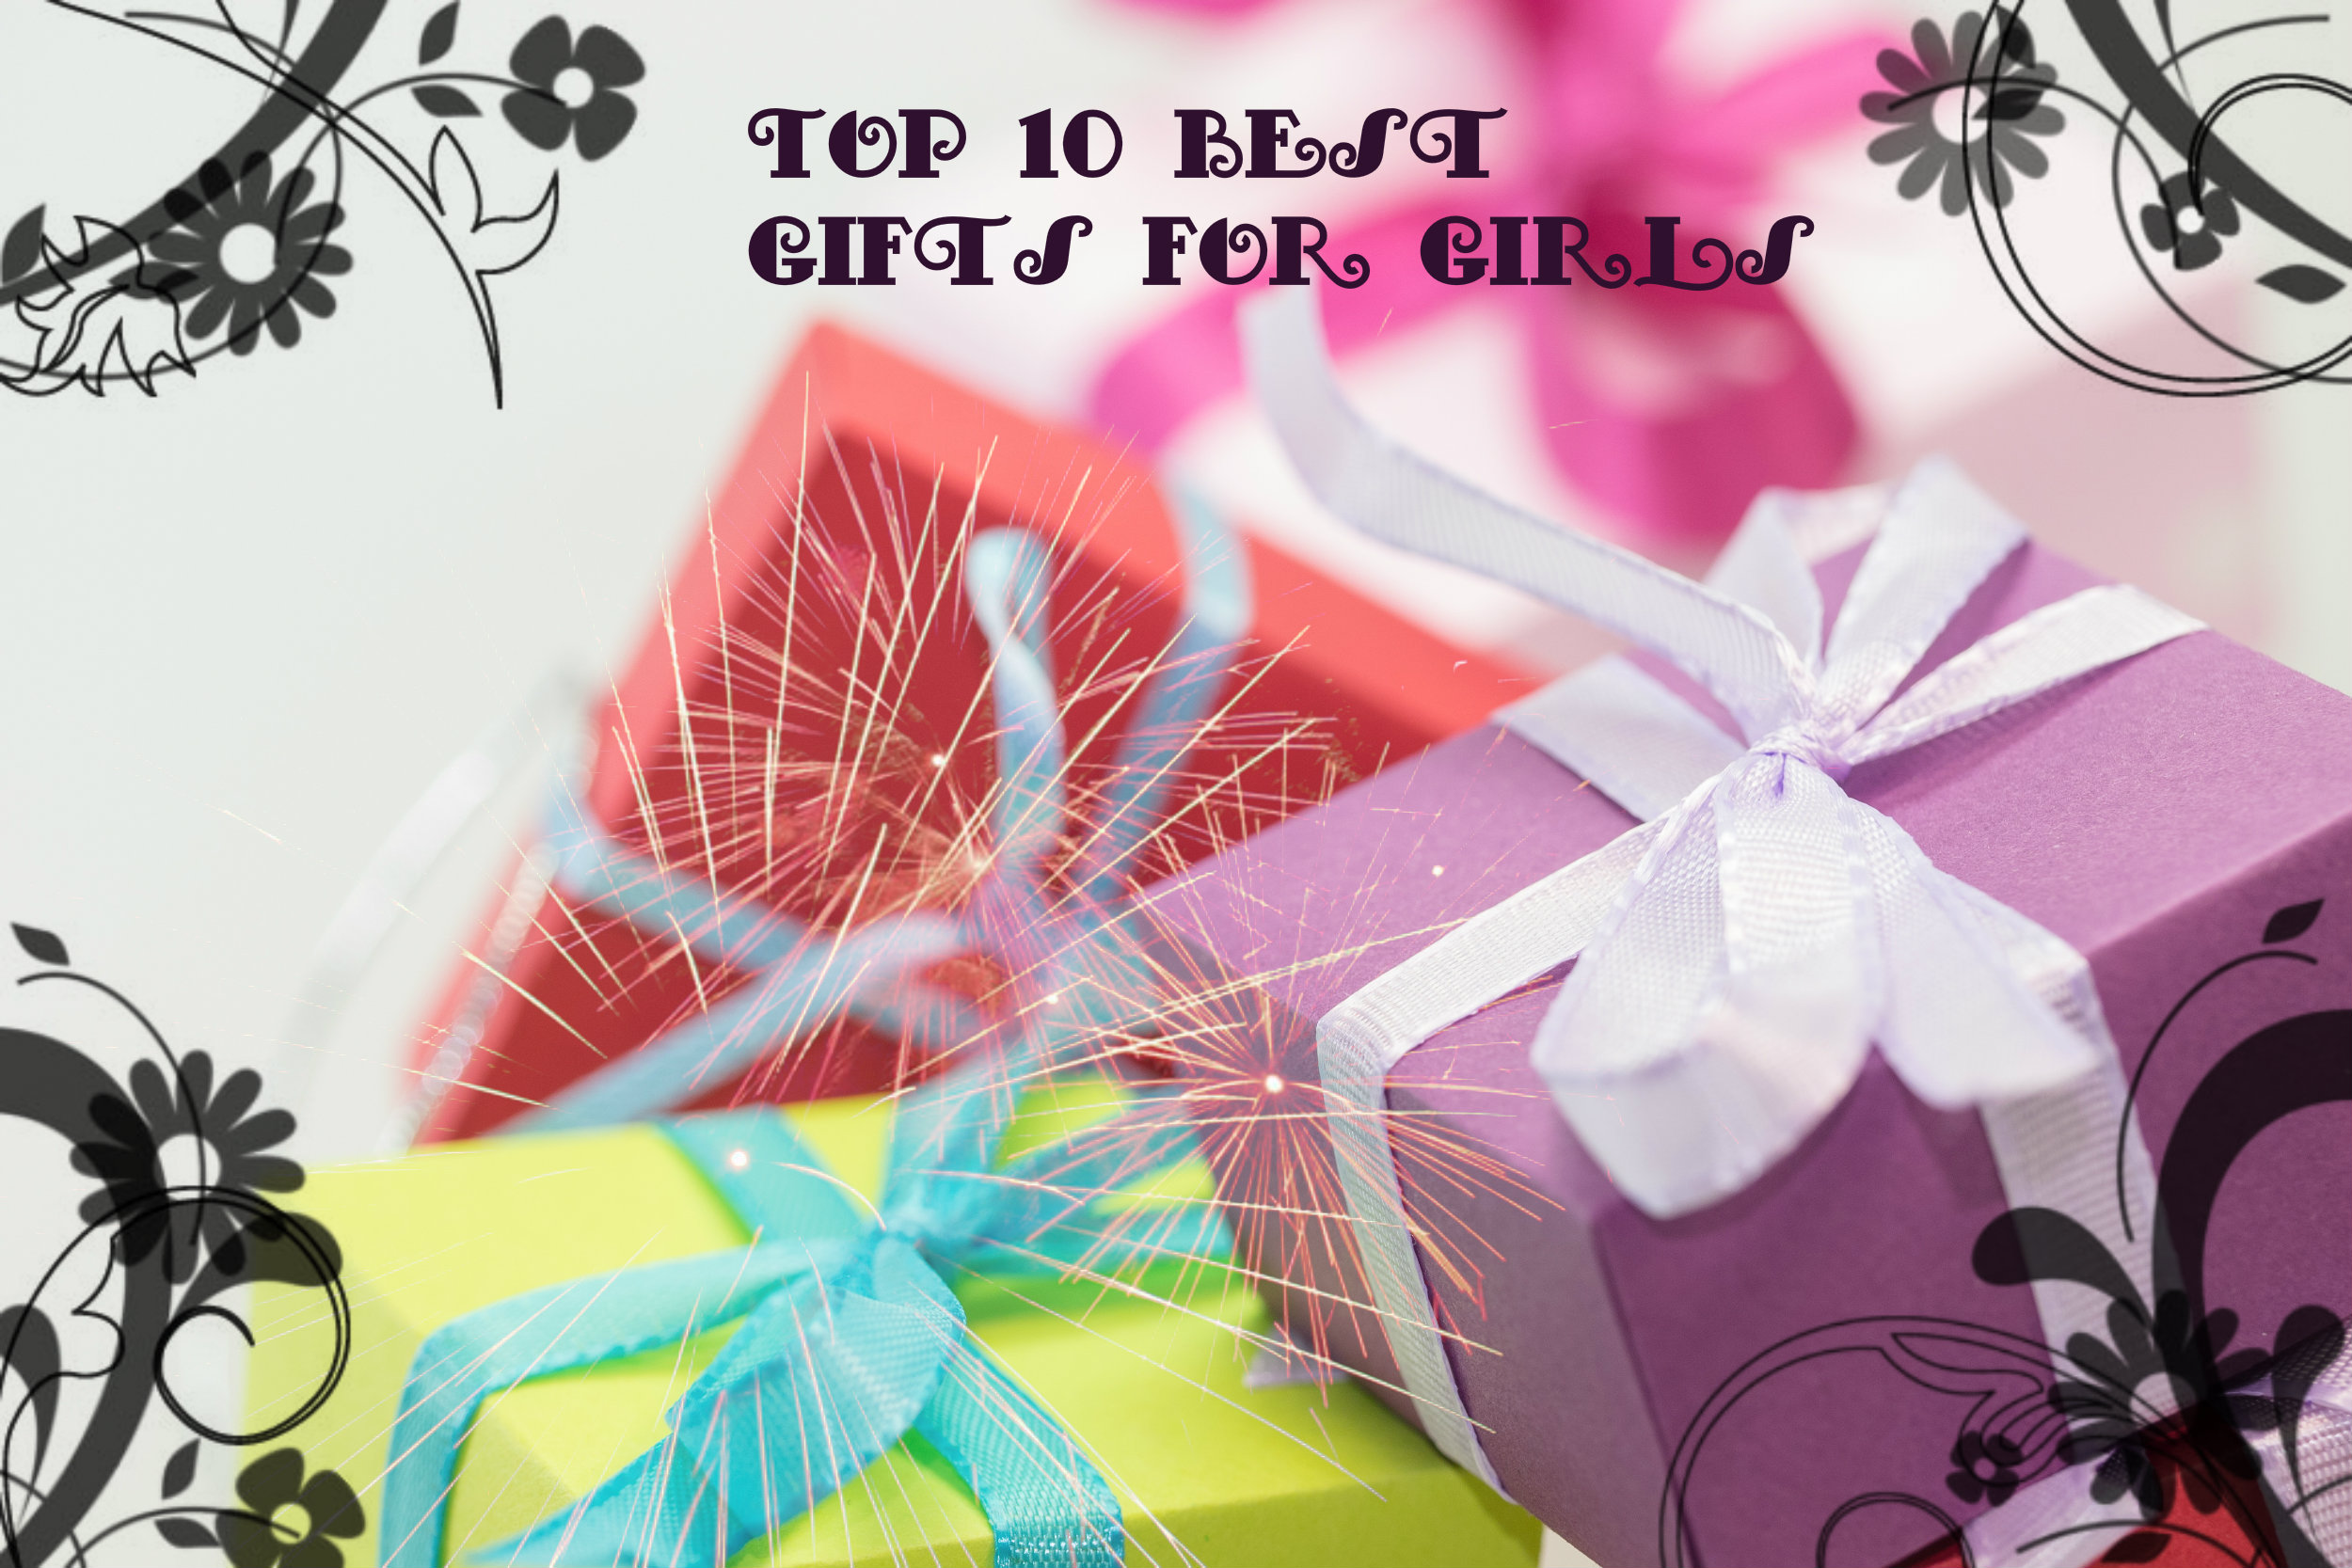 Best Gifts for Girls in 2018